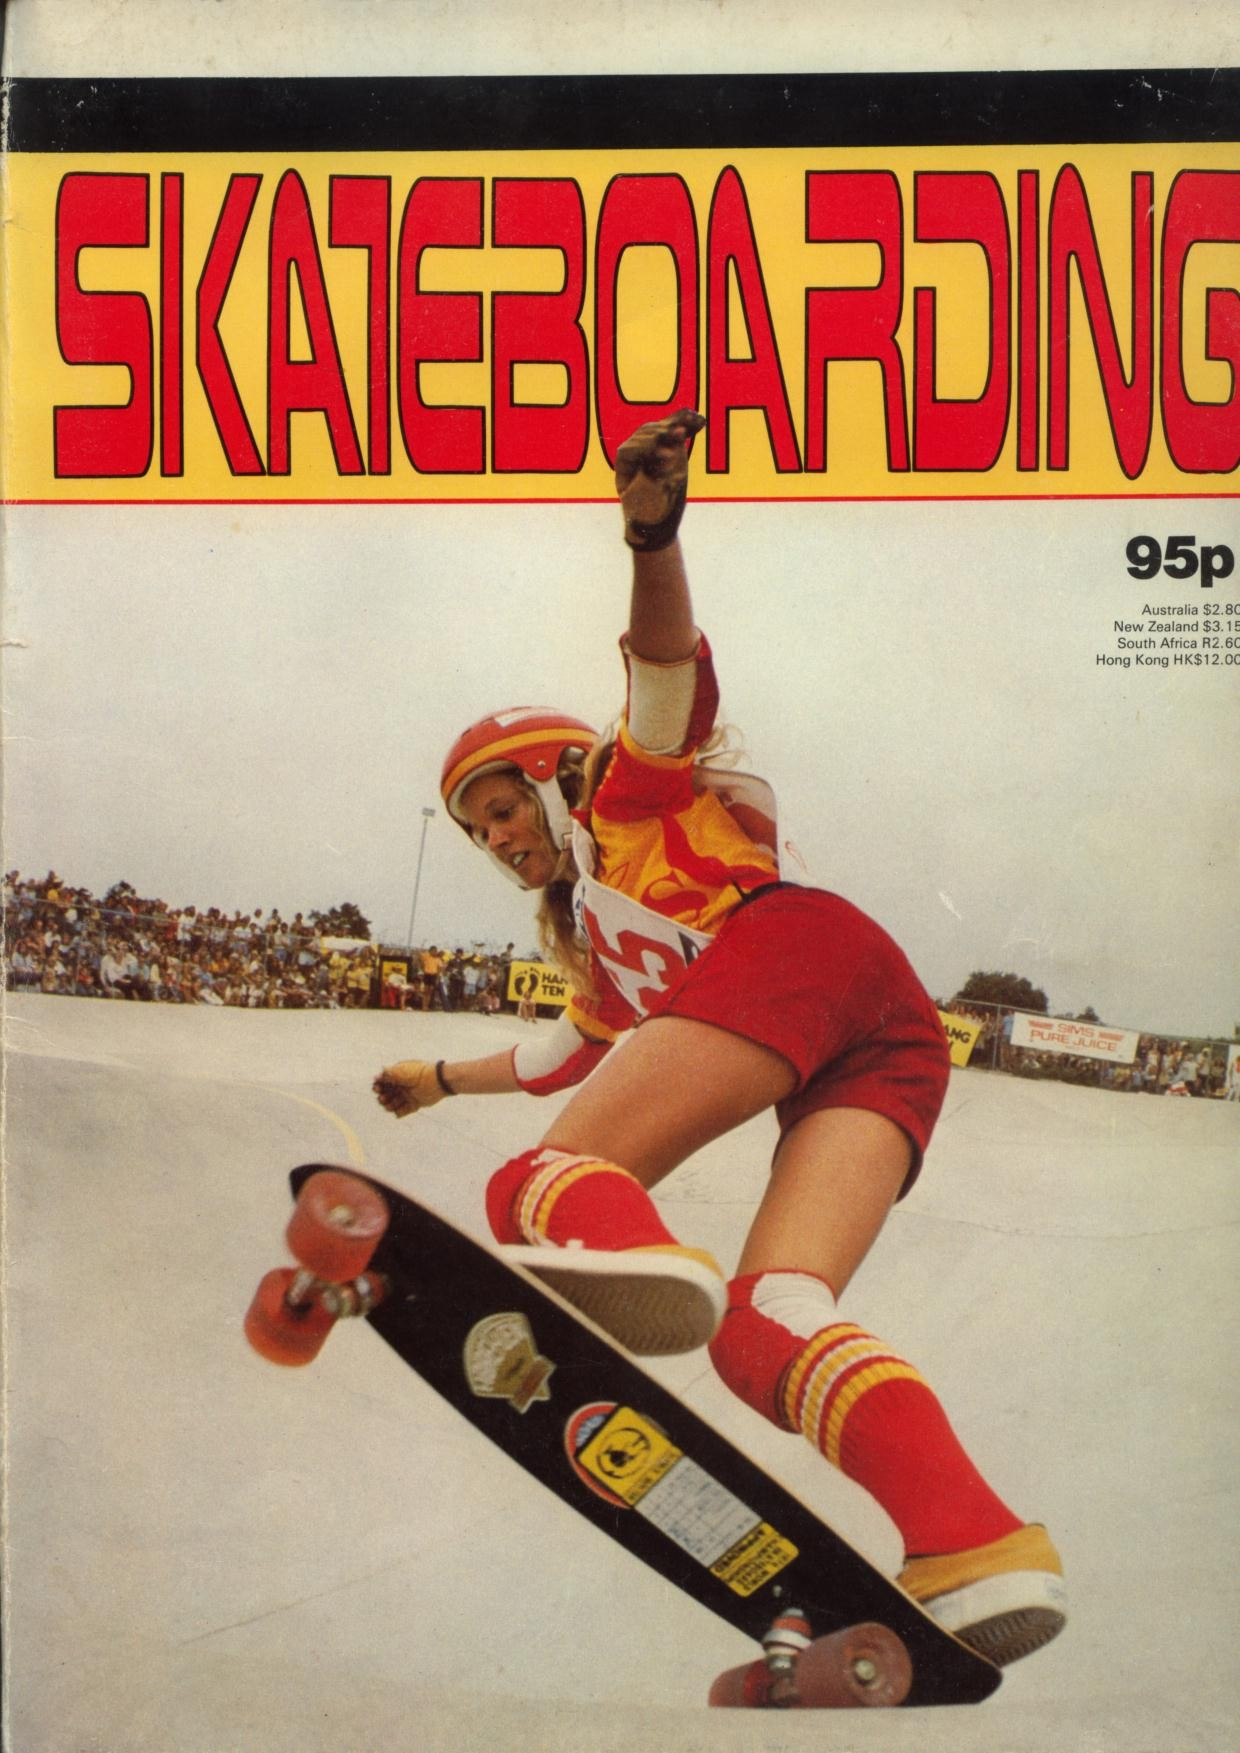 Pin By Rusty Widebottom On Vintage Skateboards